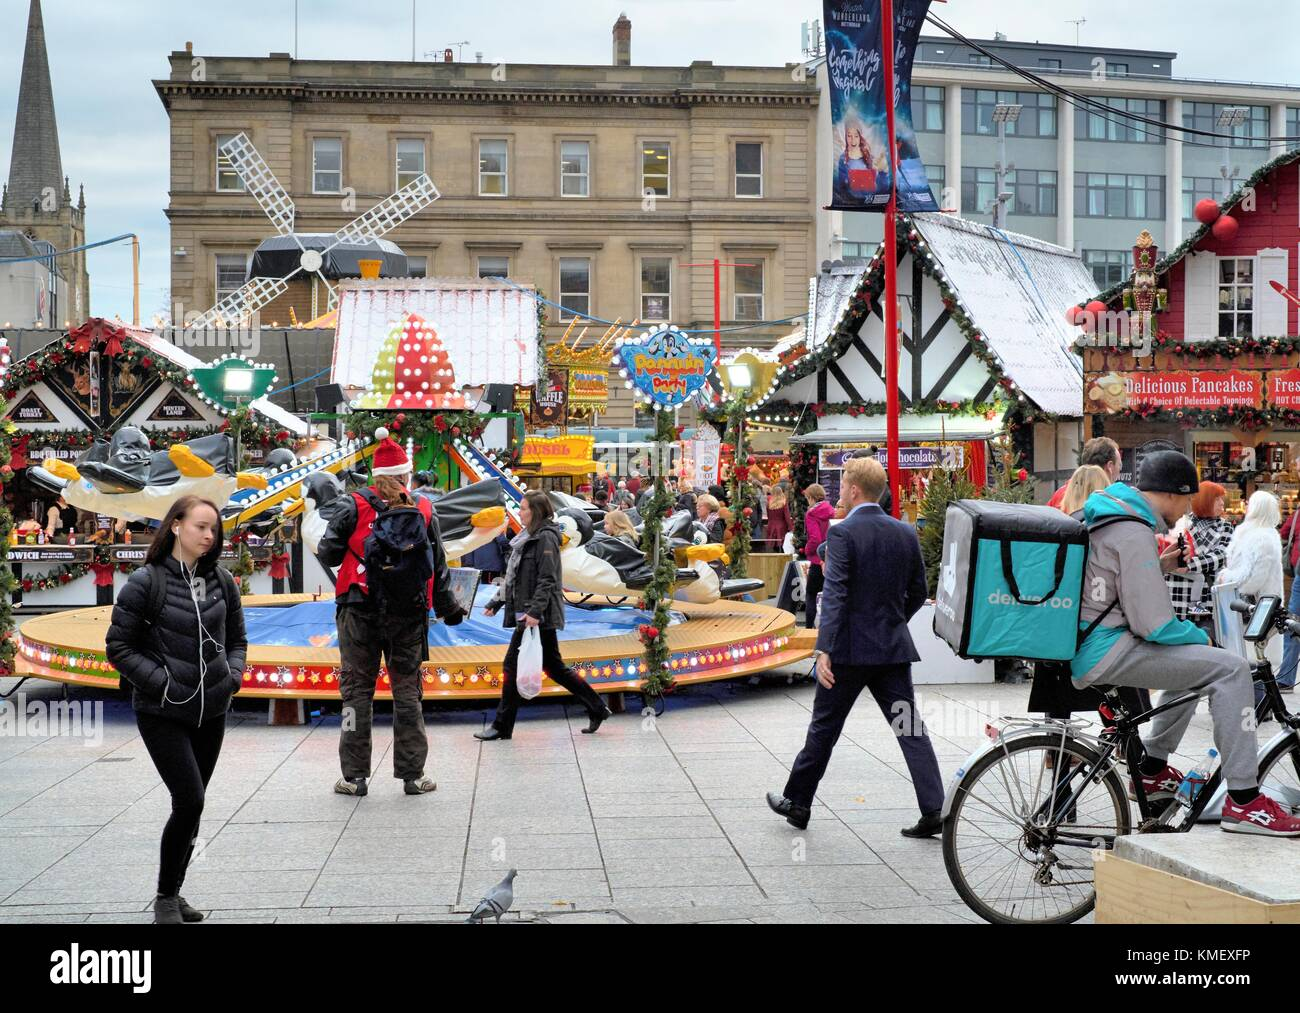 Nottingham Christmas market 2017 - Stock Image